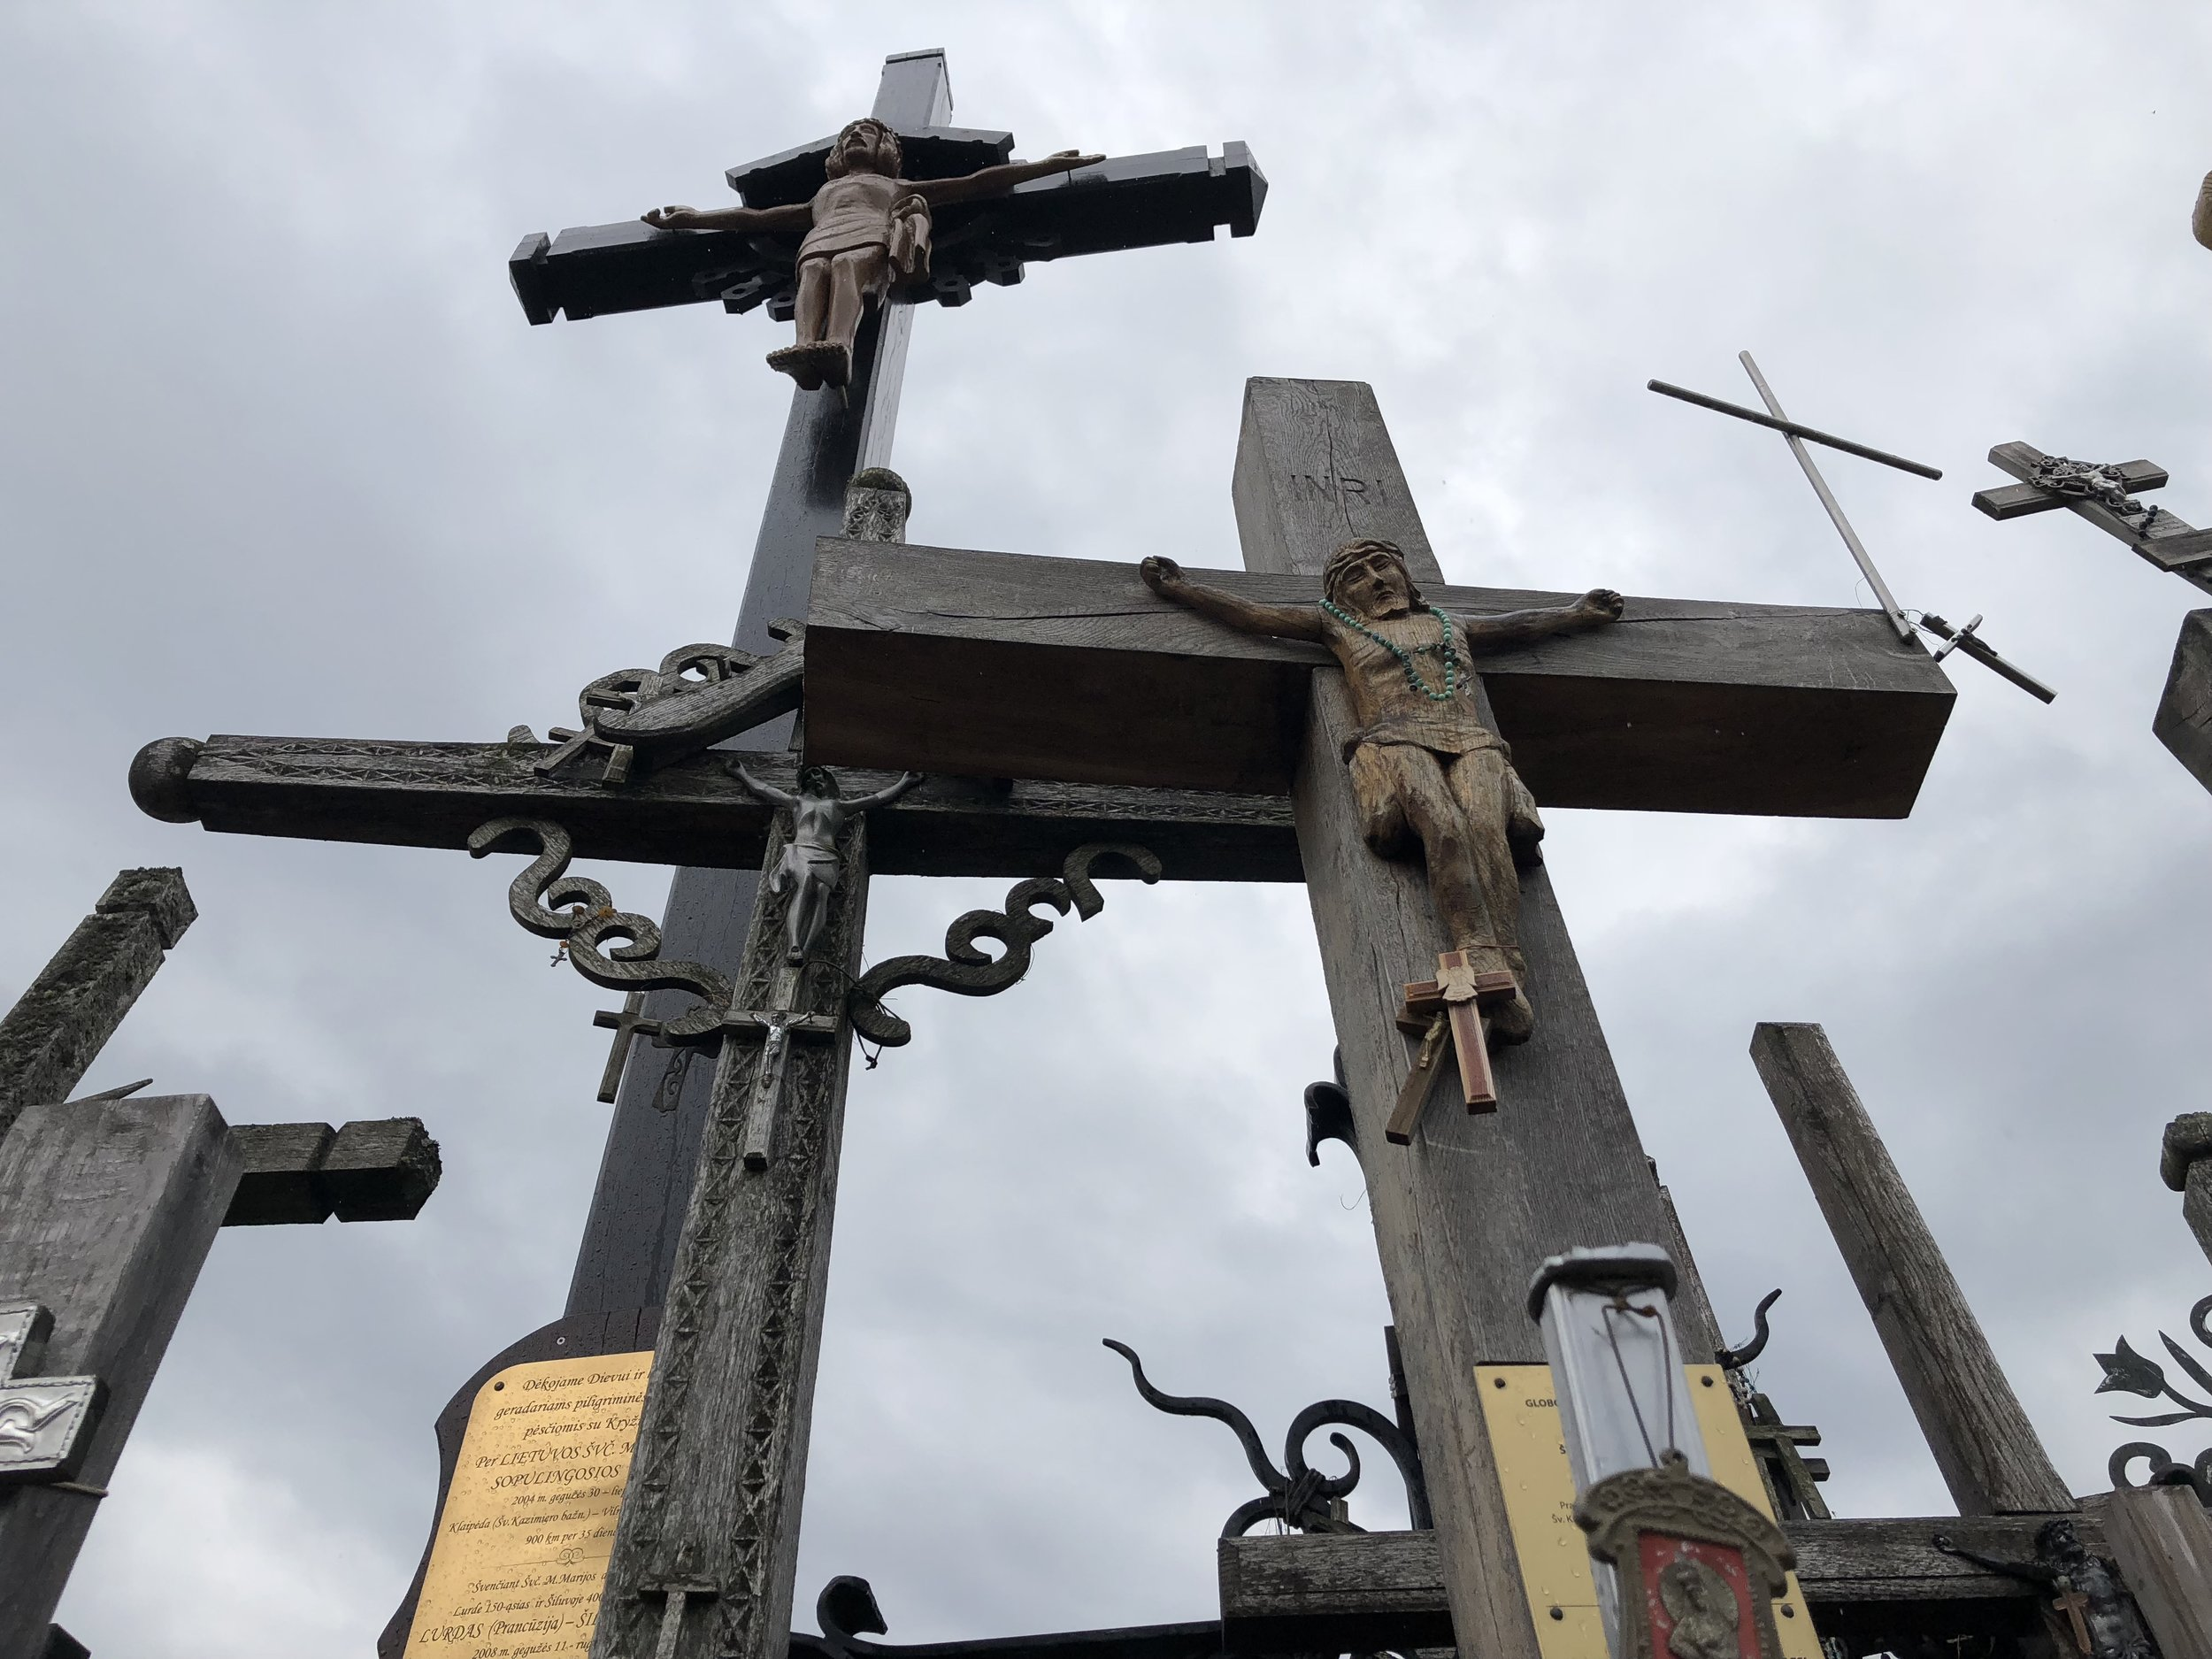 Looking up as you enter the Hill of Crosses in Lithuania.